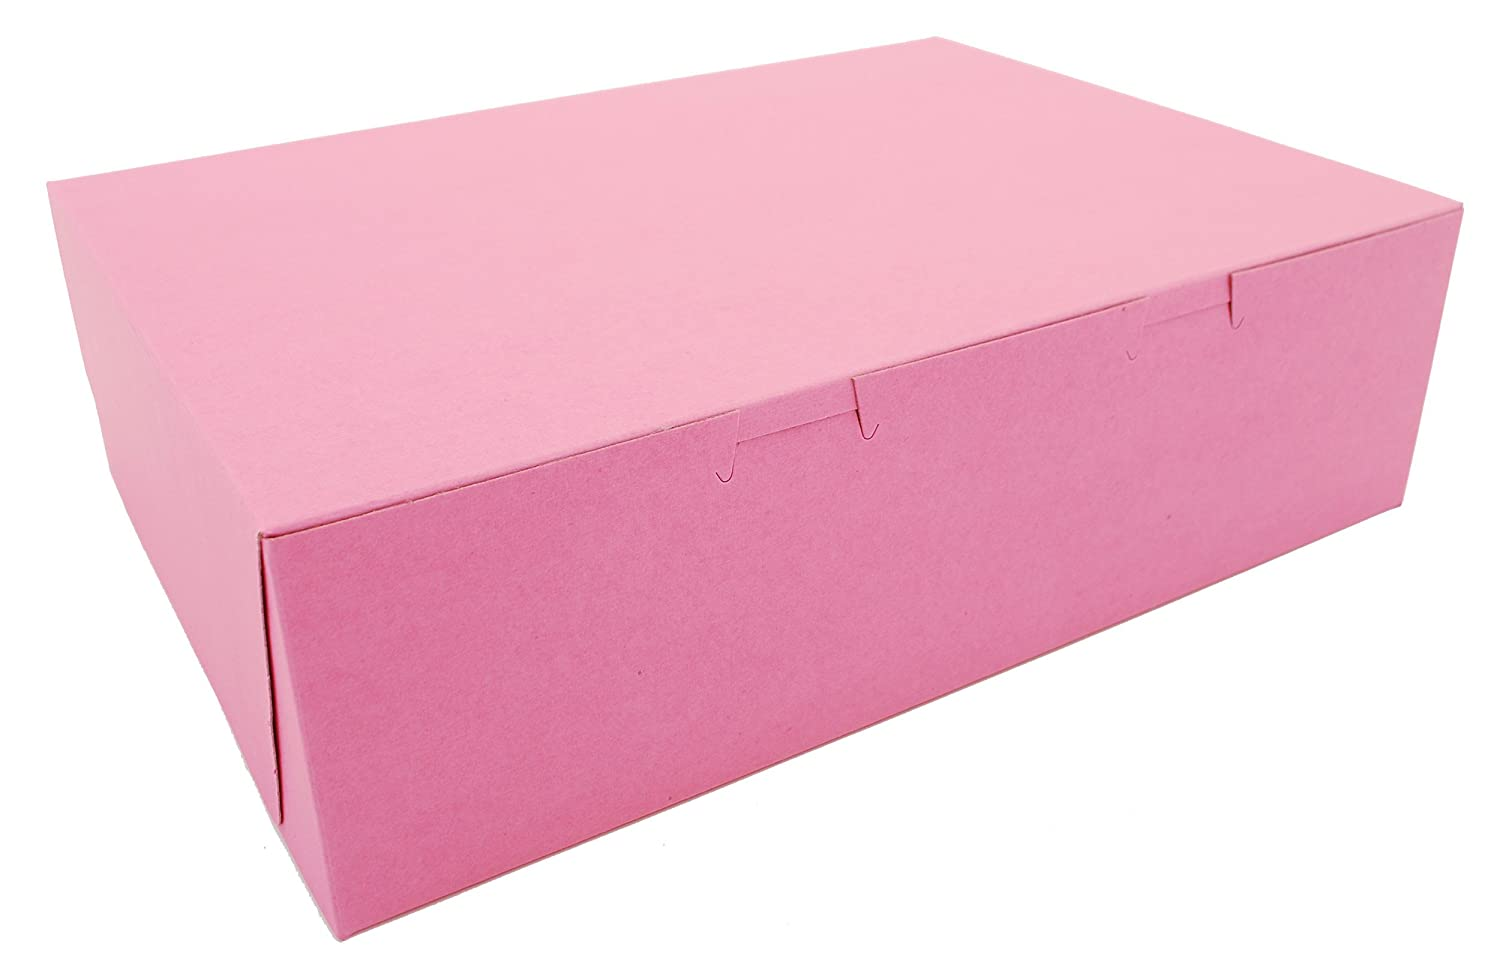 Southern Champion Tray 0890 Pink Paperboard Non-Window Lock-Corner Bakery Box, 14